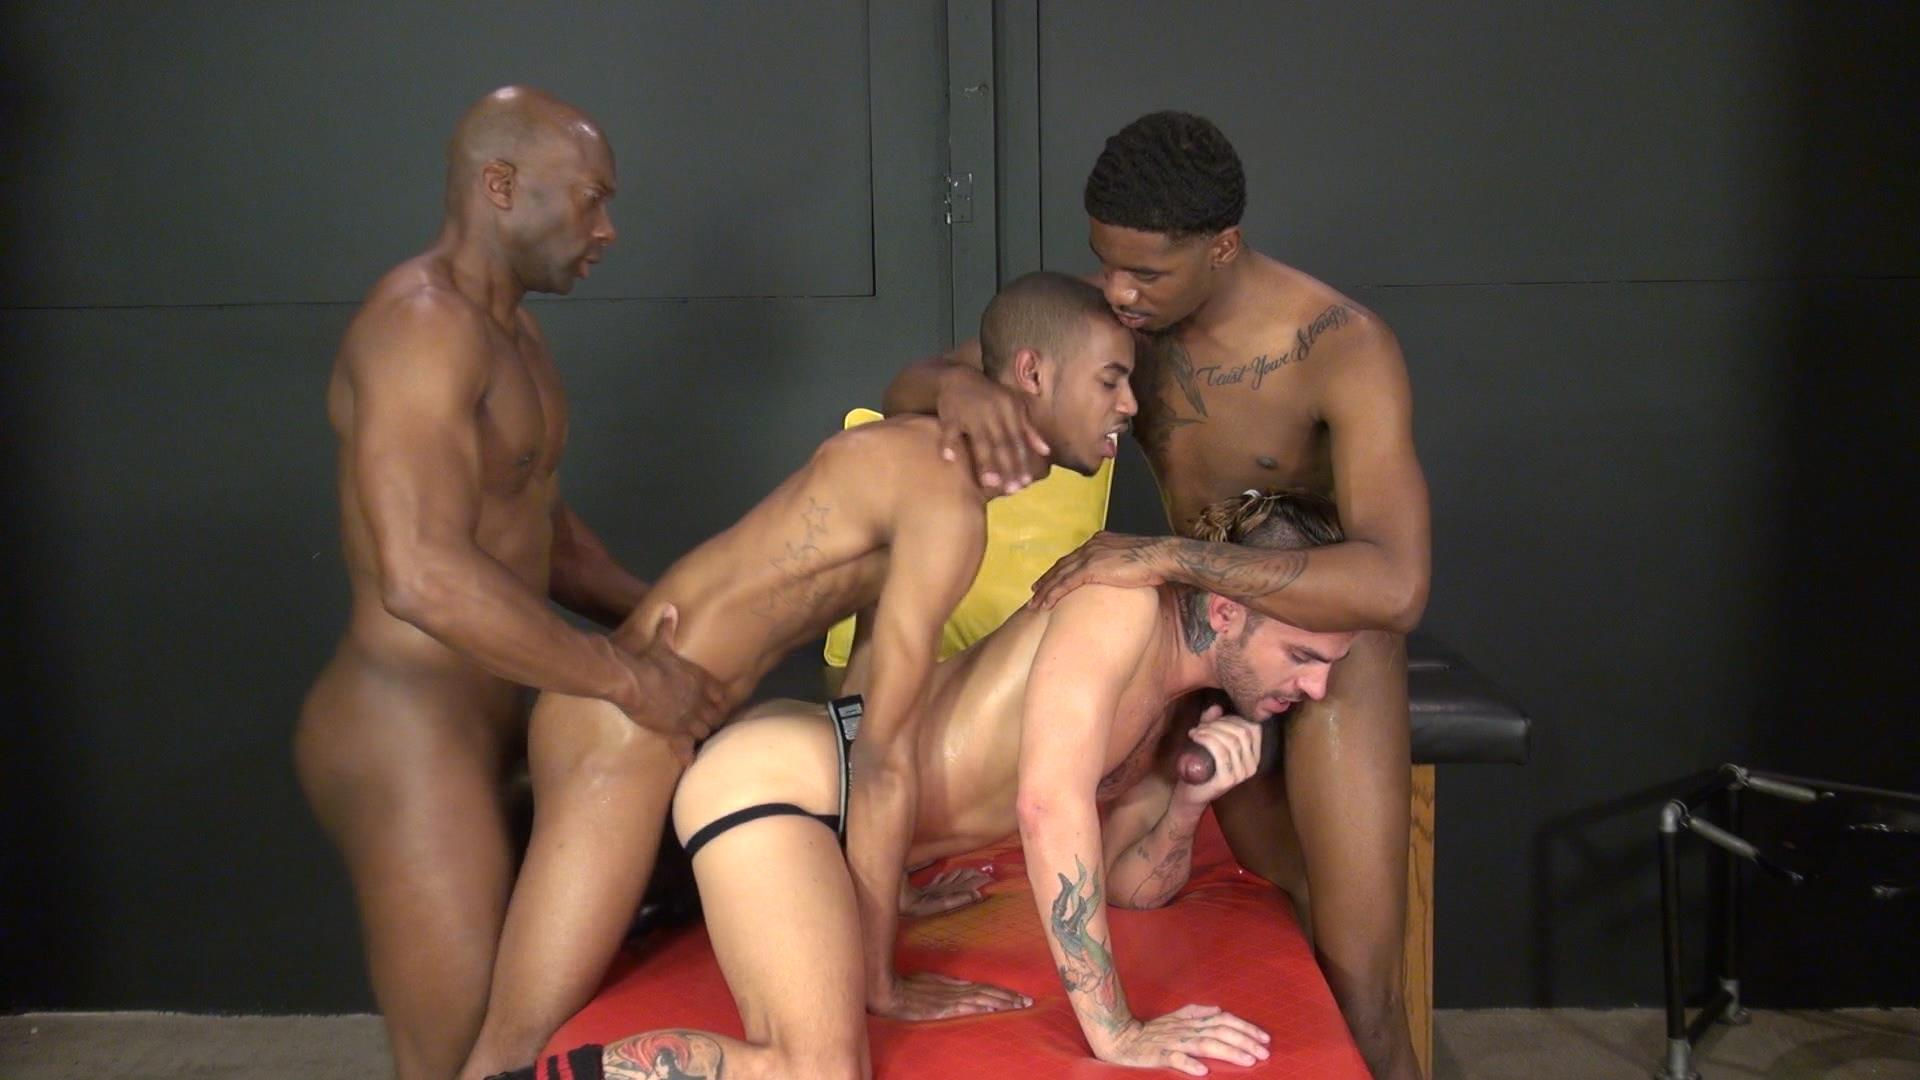 Cristopher recommend best of asian biggest dick